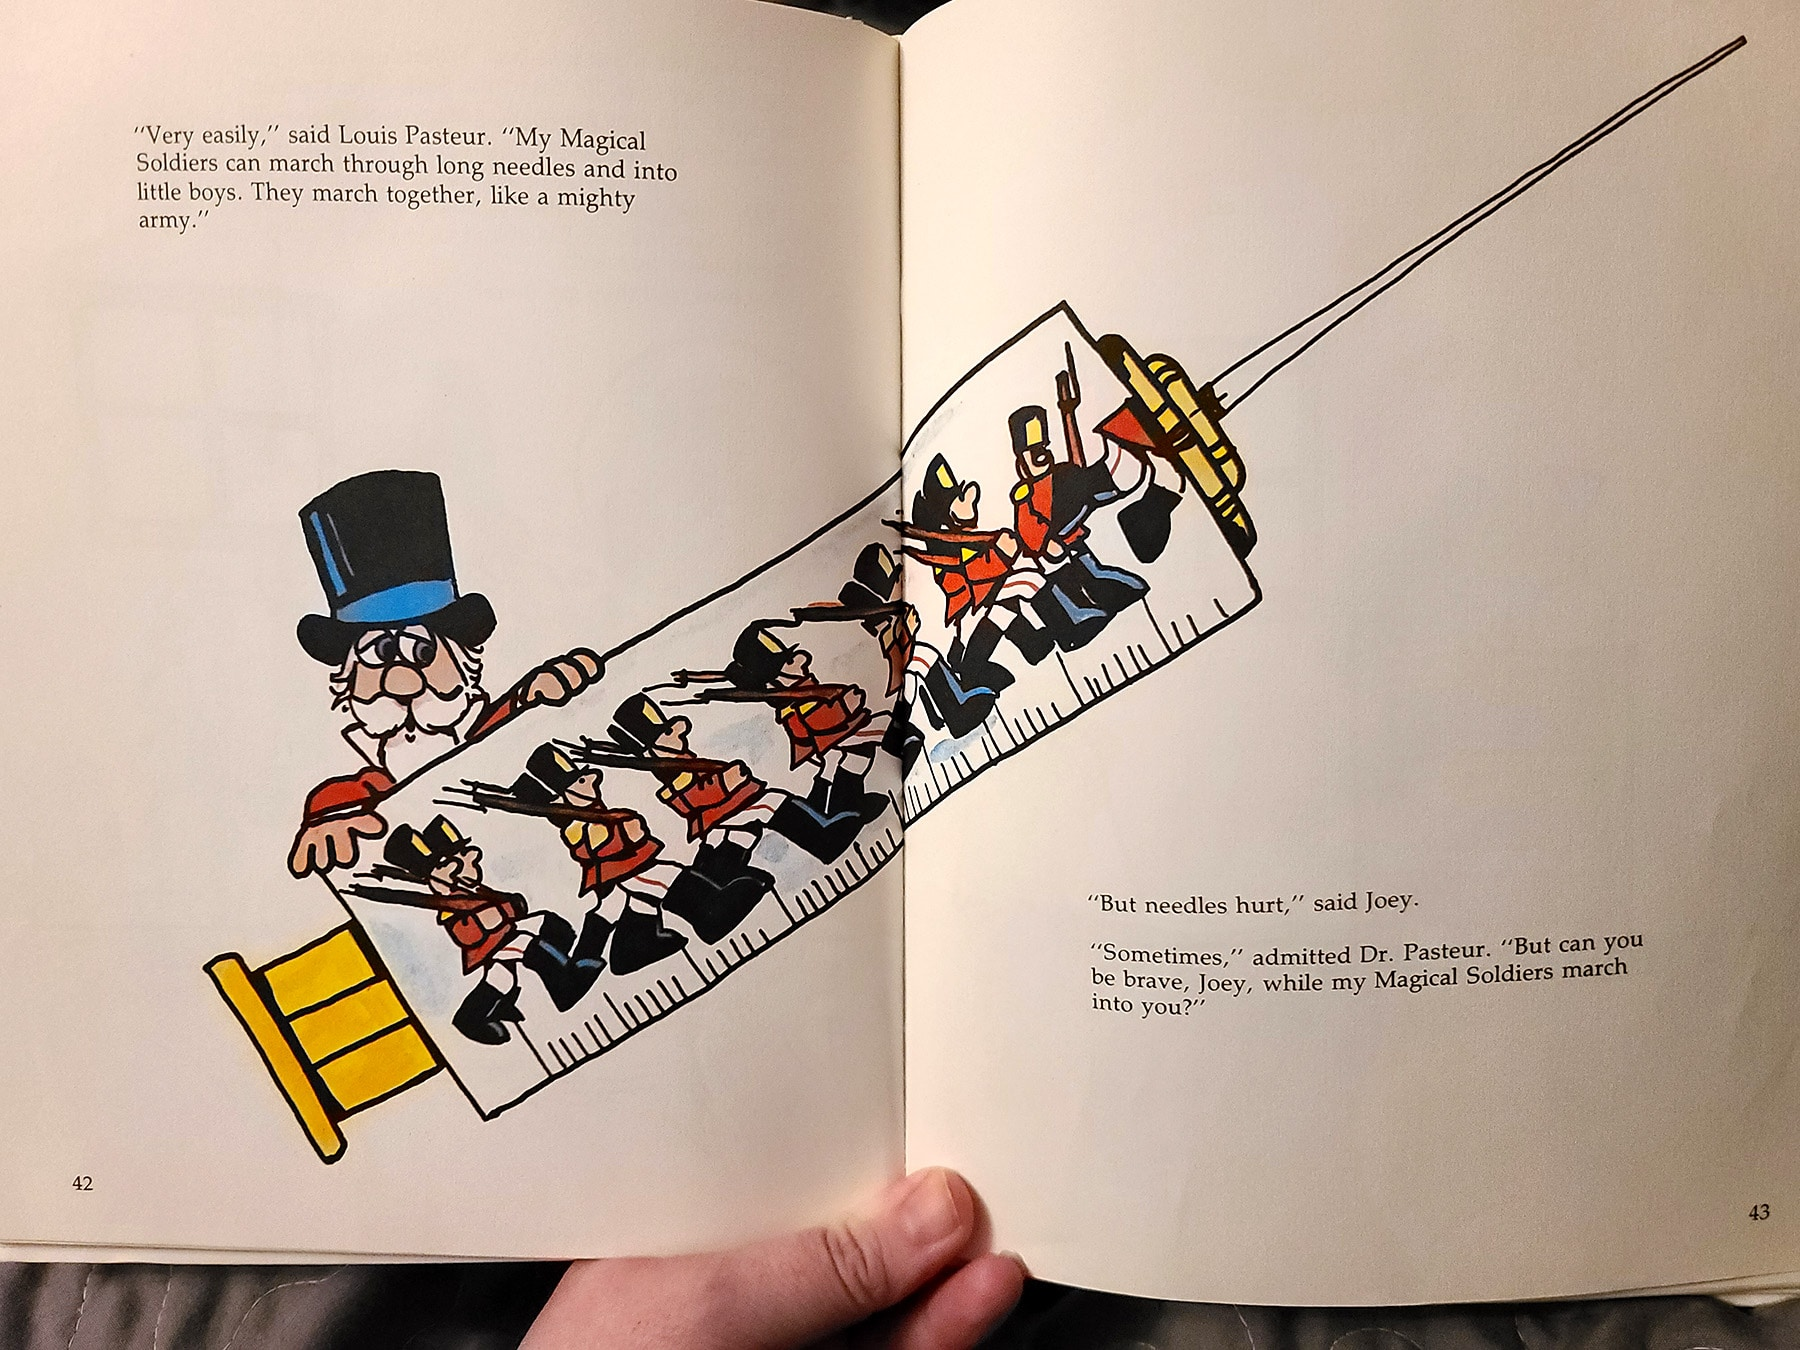 A hand holds open a children's book, it shows an illustration of soldiers in a giant needle.